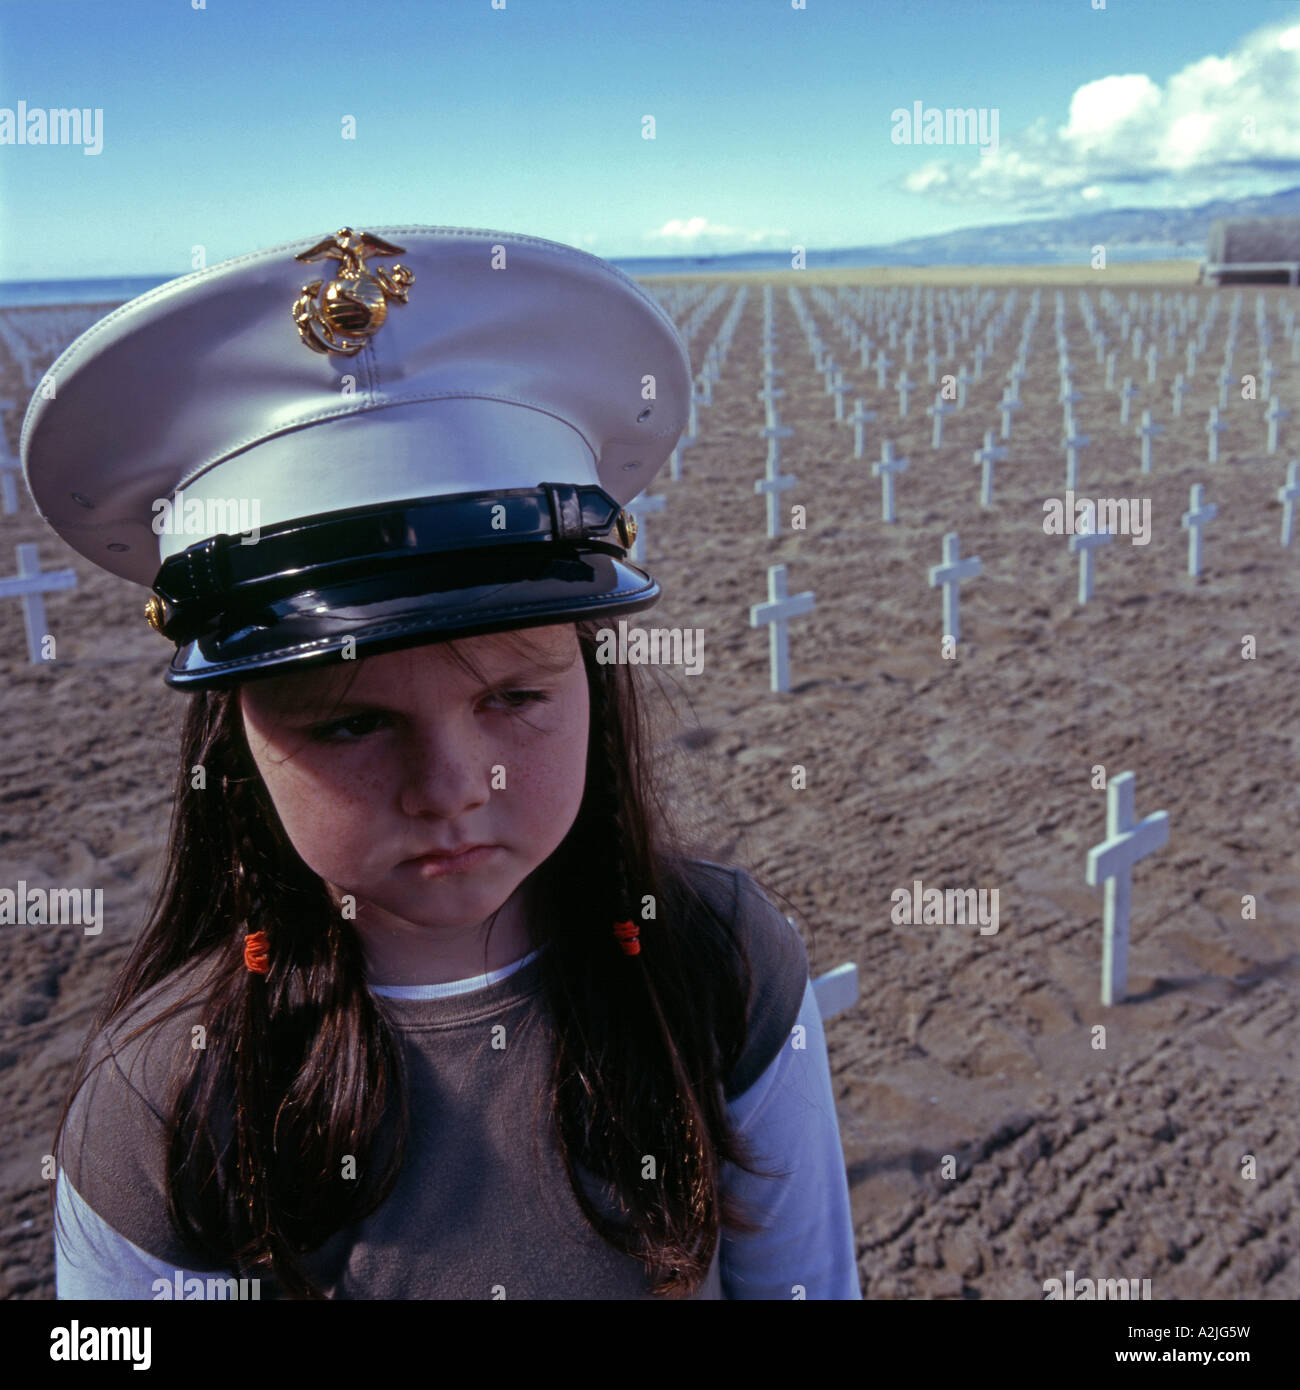 A child stands next to a sea of white crosses on Santa Monica beach, Los Angeles, California, USA. - Stock Image